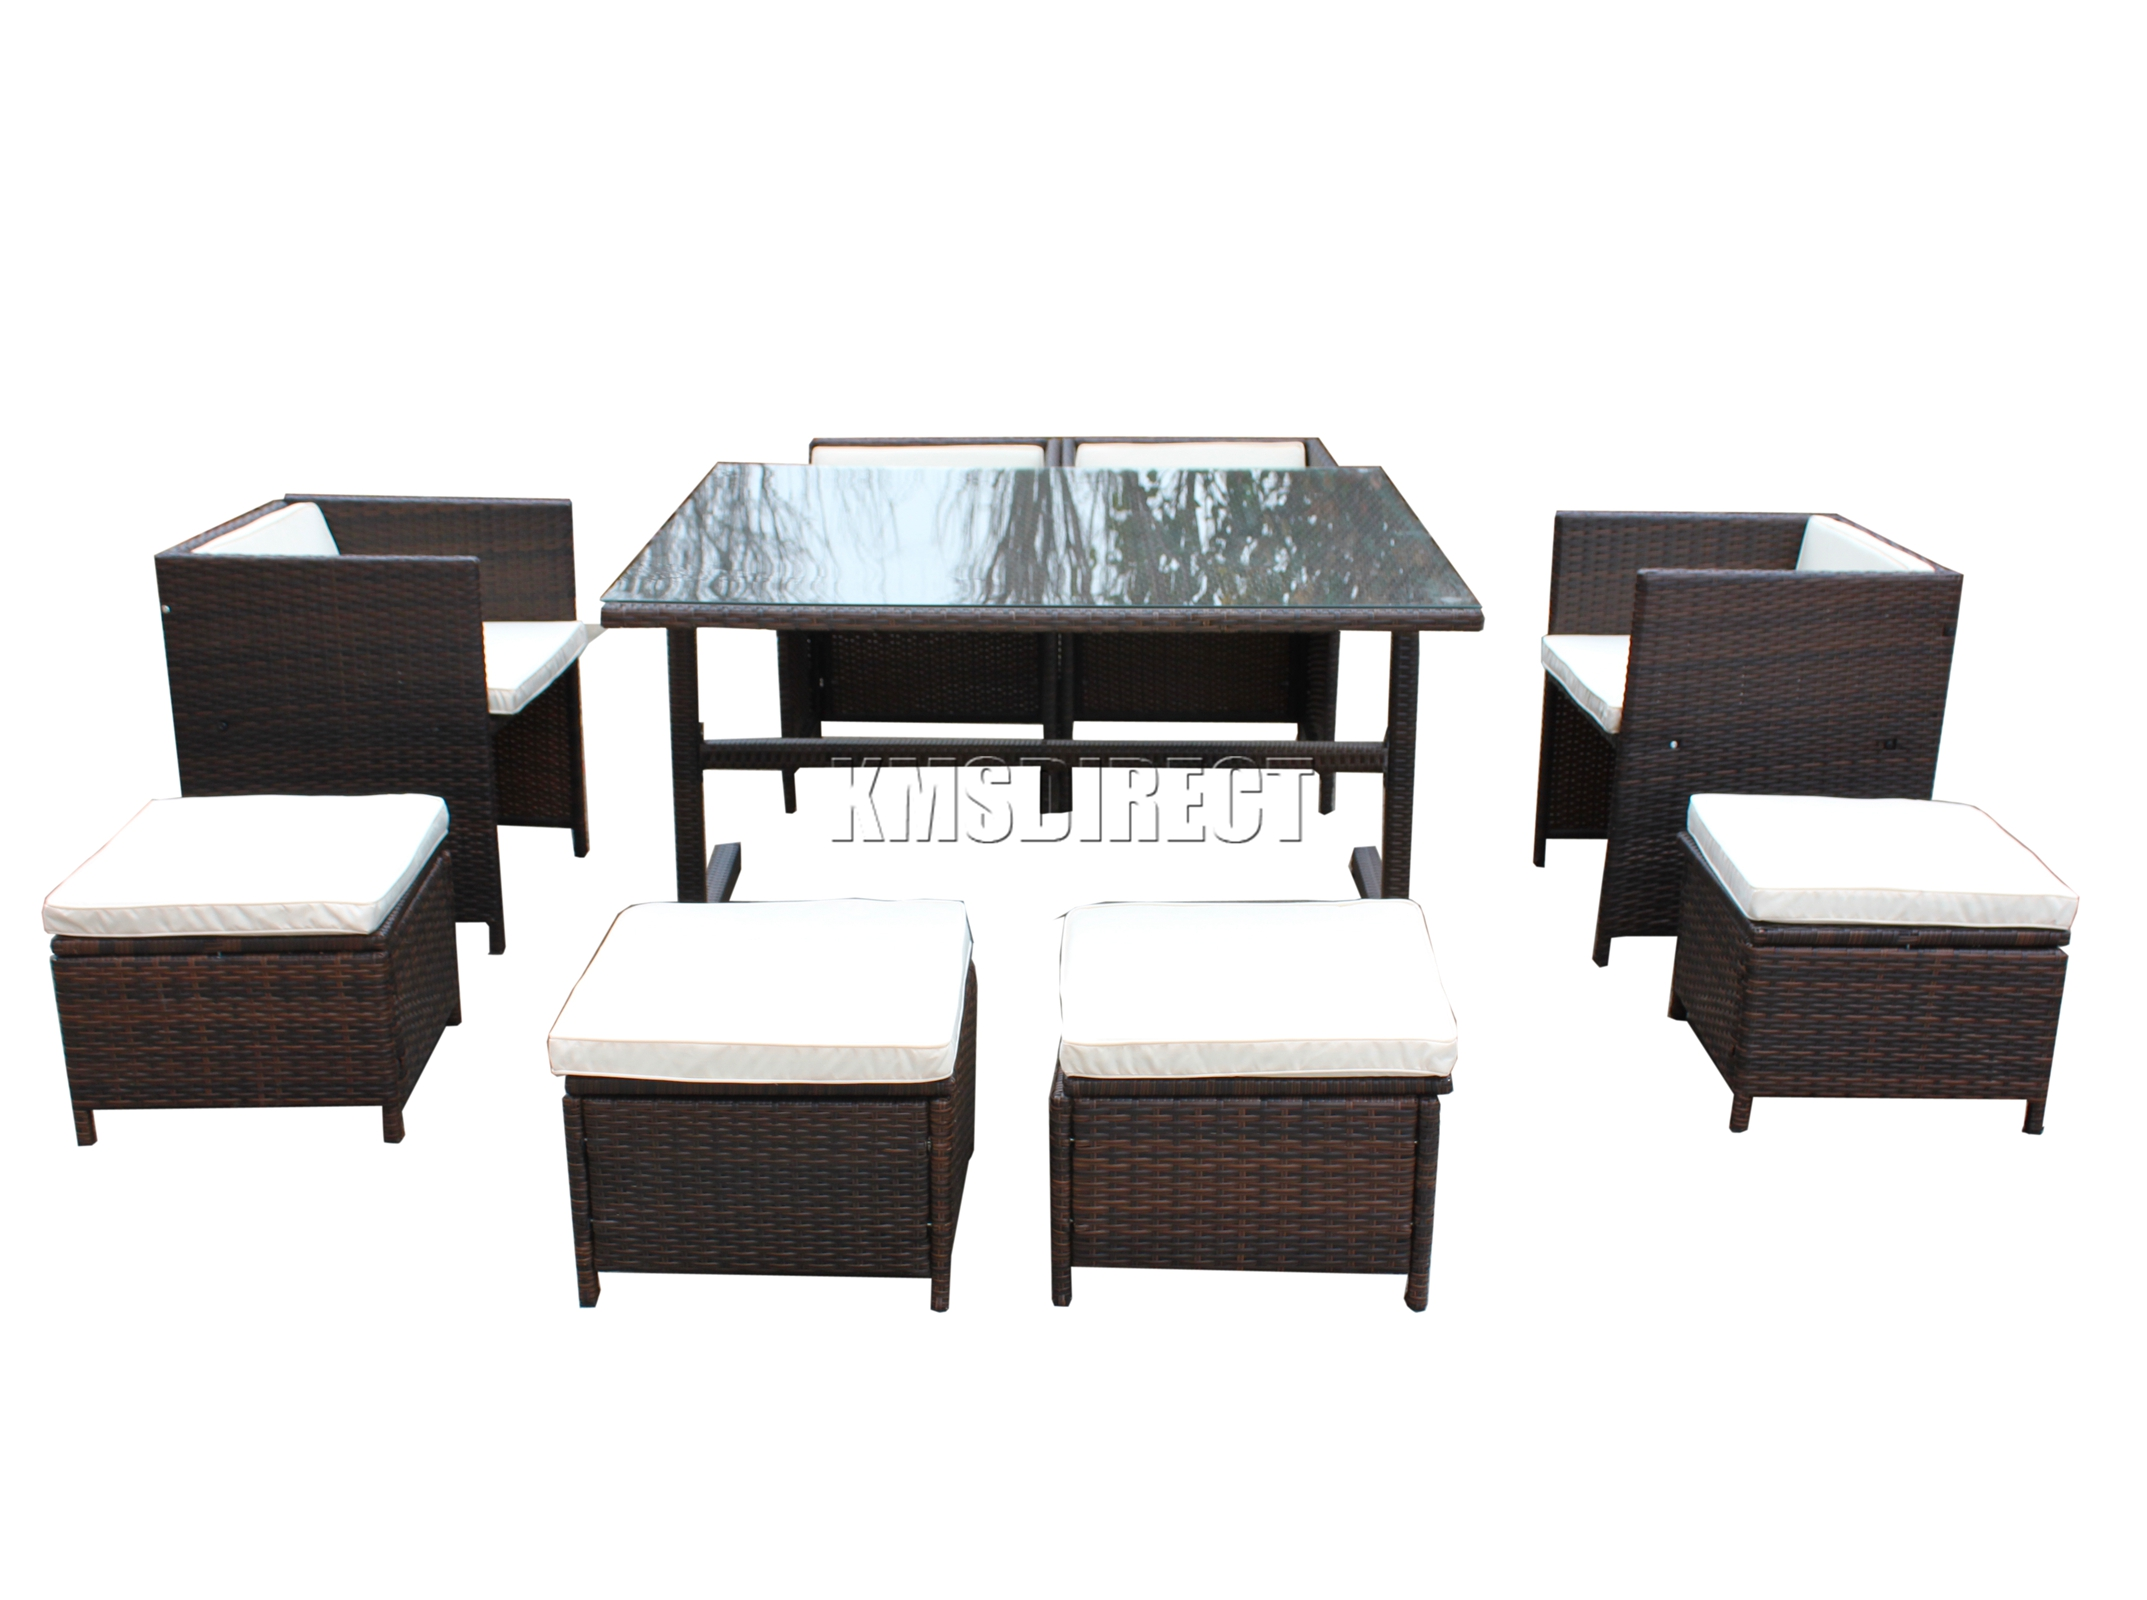 repair rattan chair seat the durango spare furniture set table garden patio